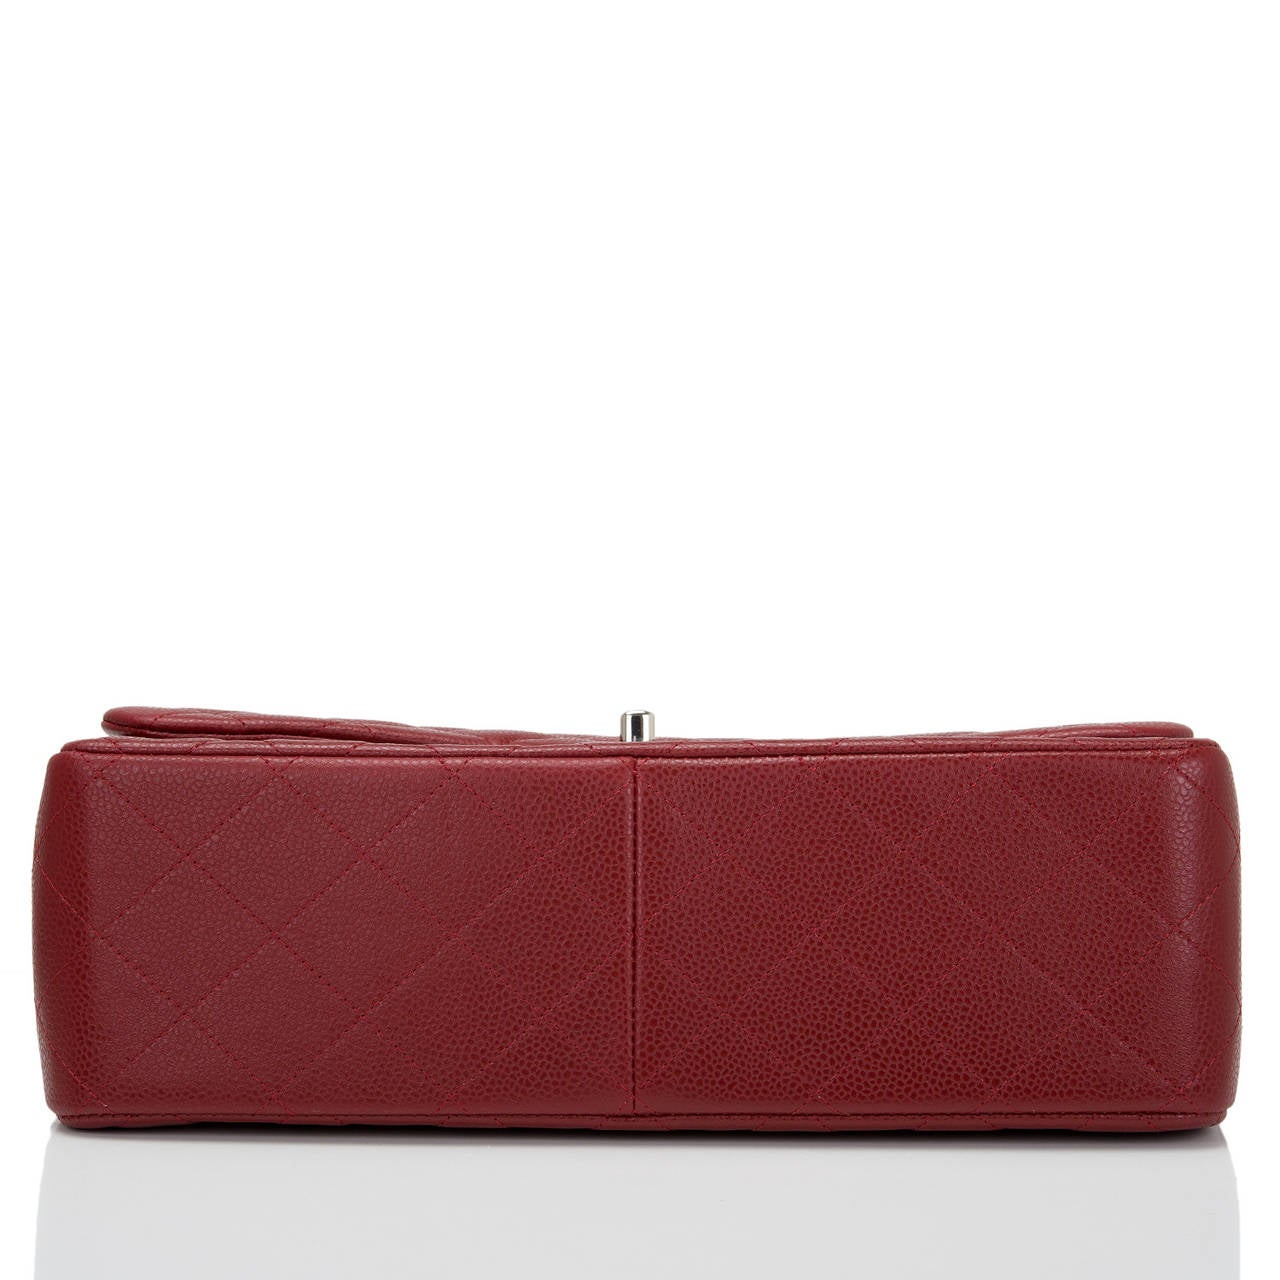 Chanel Dark Red Quilted Caviar Jumbo Classic Double Flap Bag In New Never_worn Condition For Sale In New York, NY